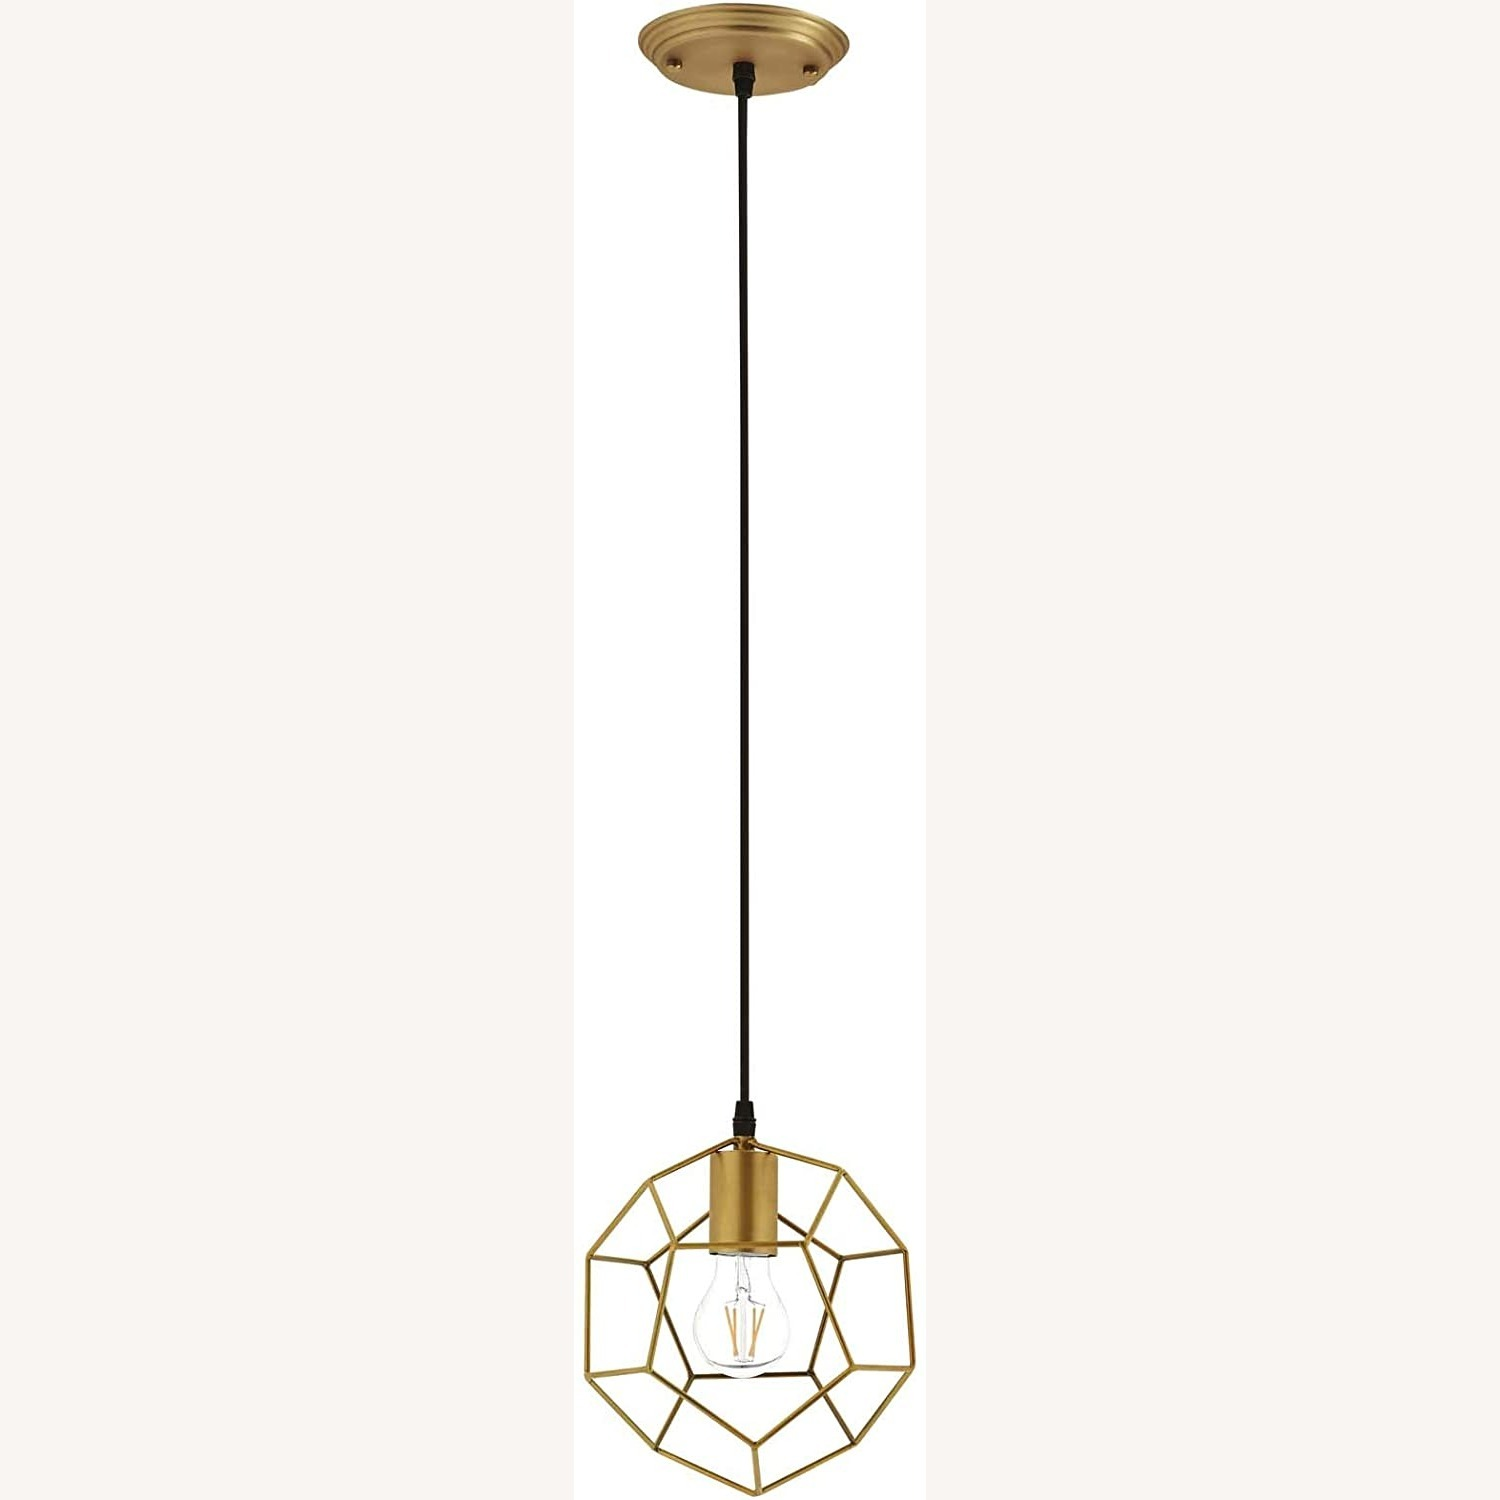 Contemporary Ceiling Lamp In Gold Metal Finish - image-0